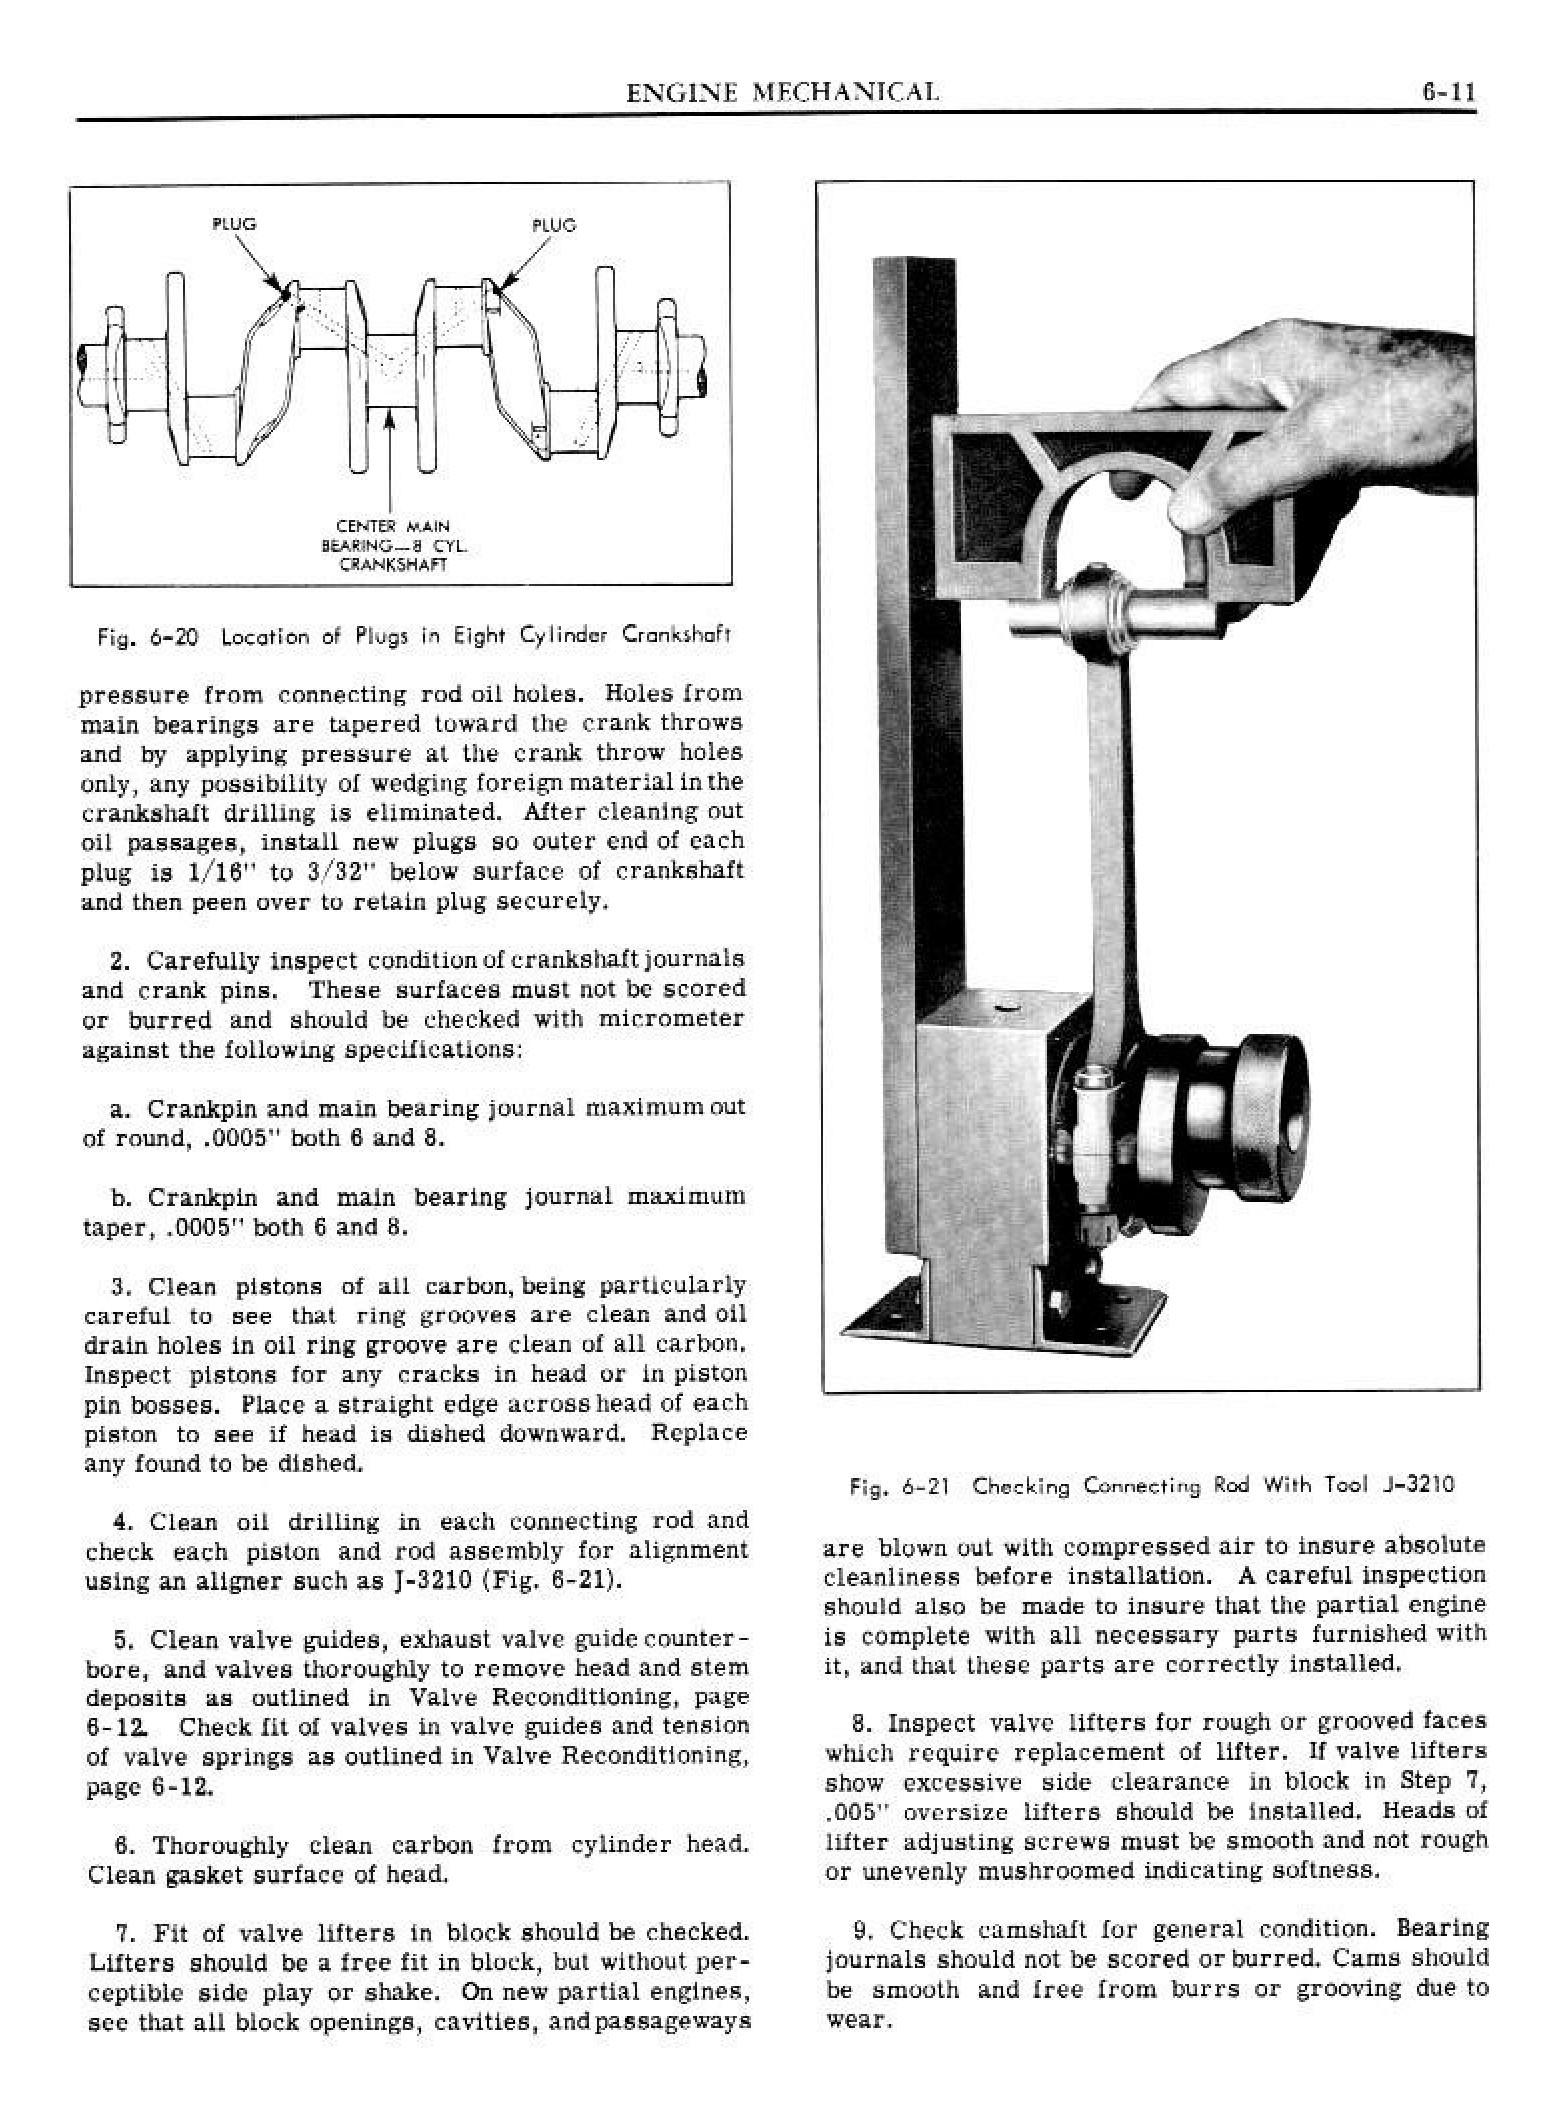 1949 Pontiac Shop Manual- Engine Mechanical Page 11 of 26